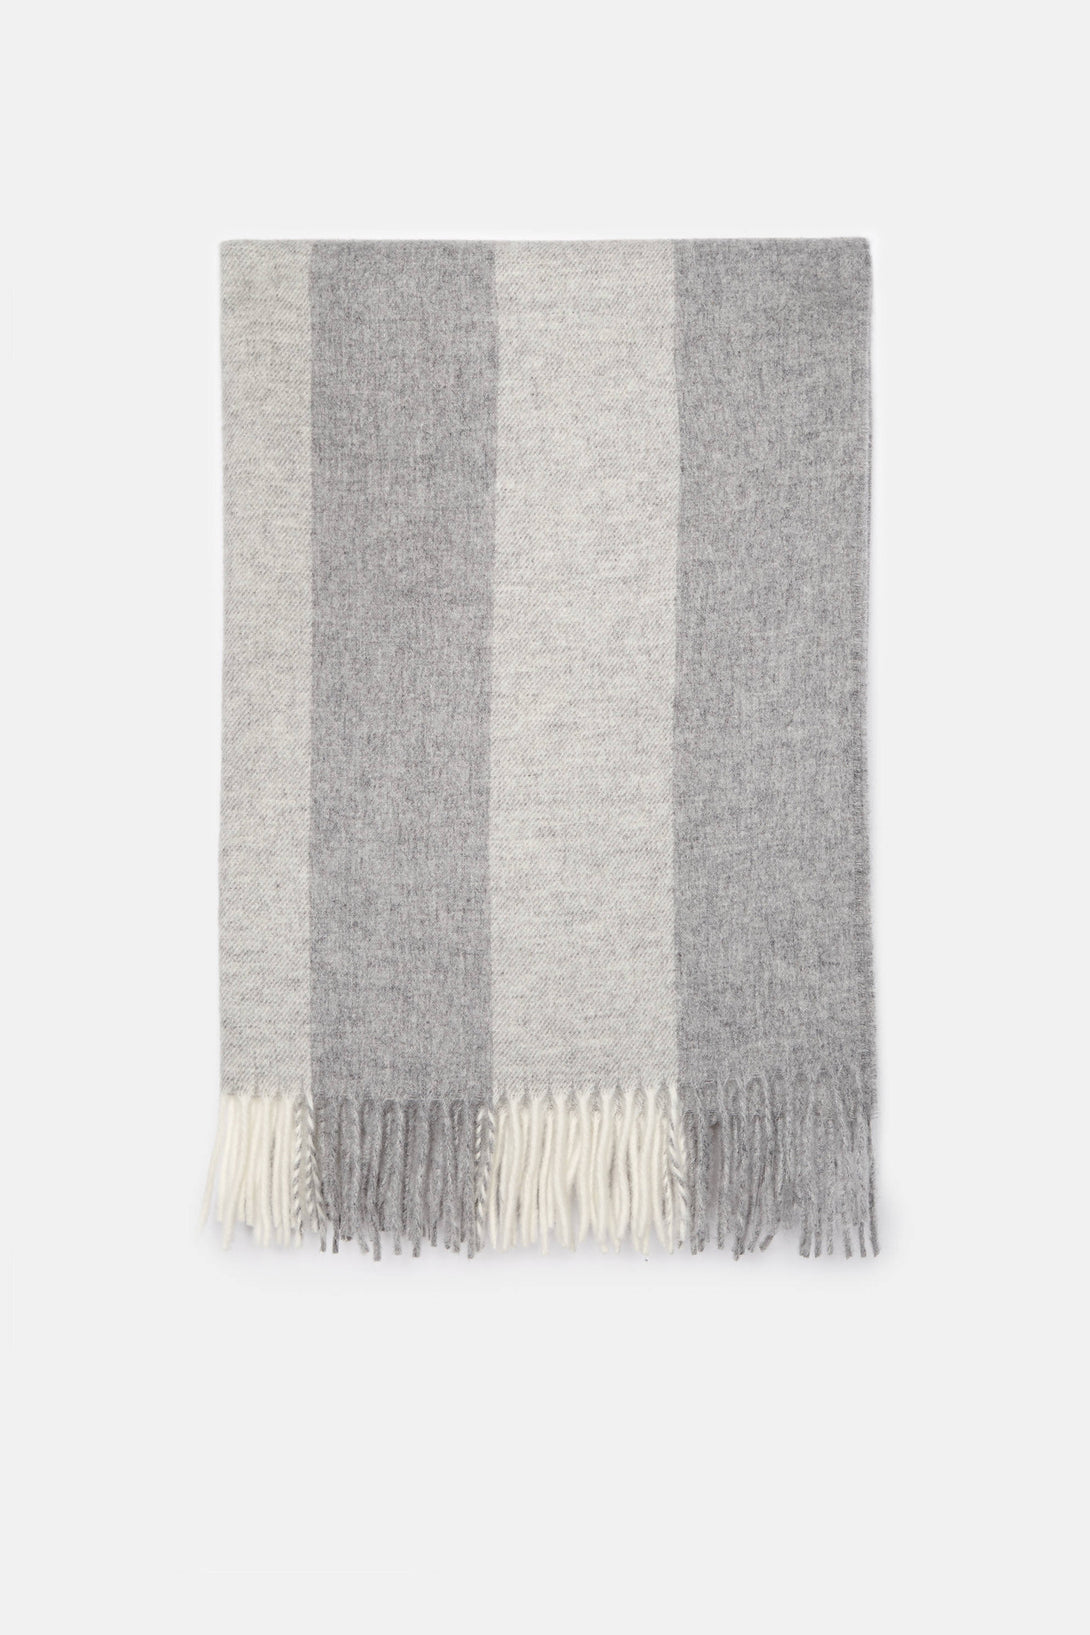 Canada Scarf - Natural White/Grey